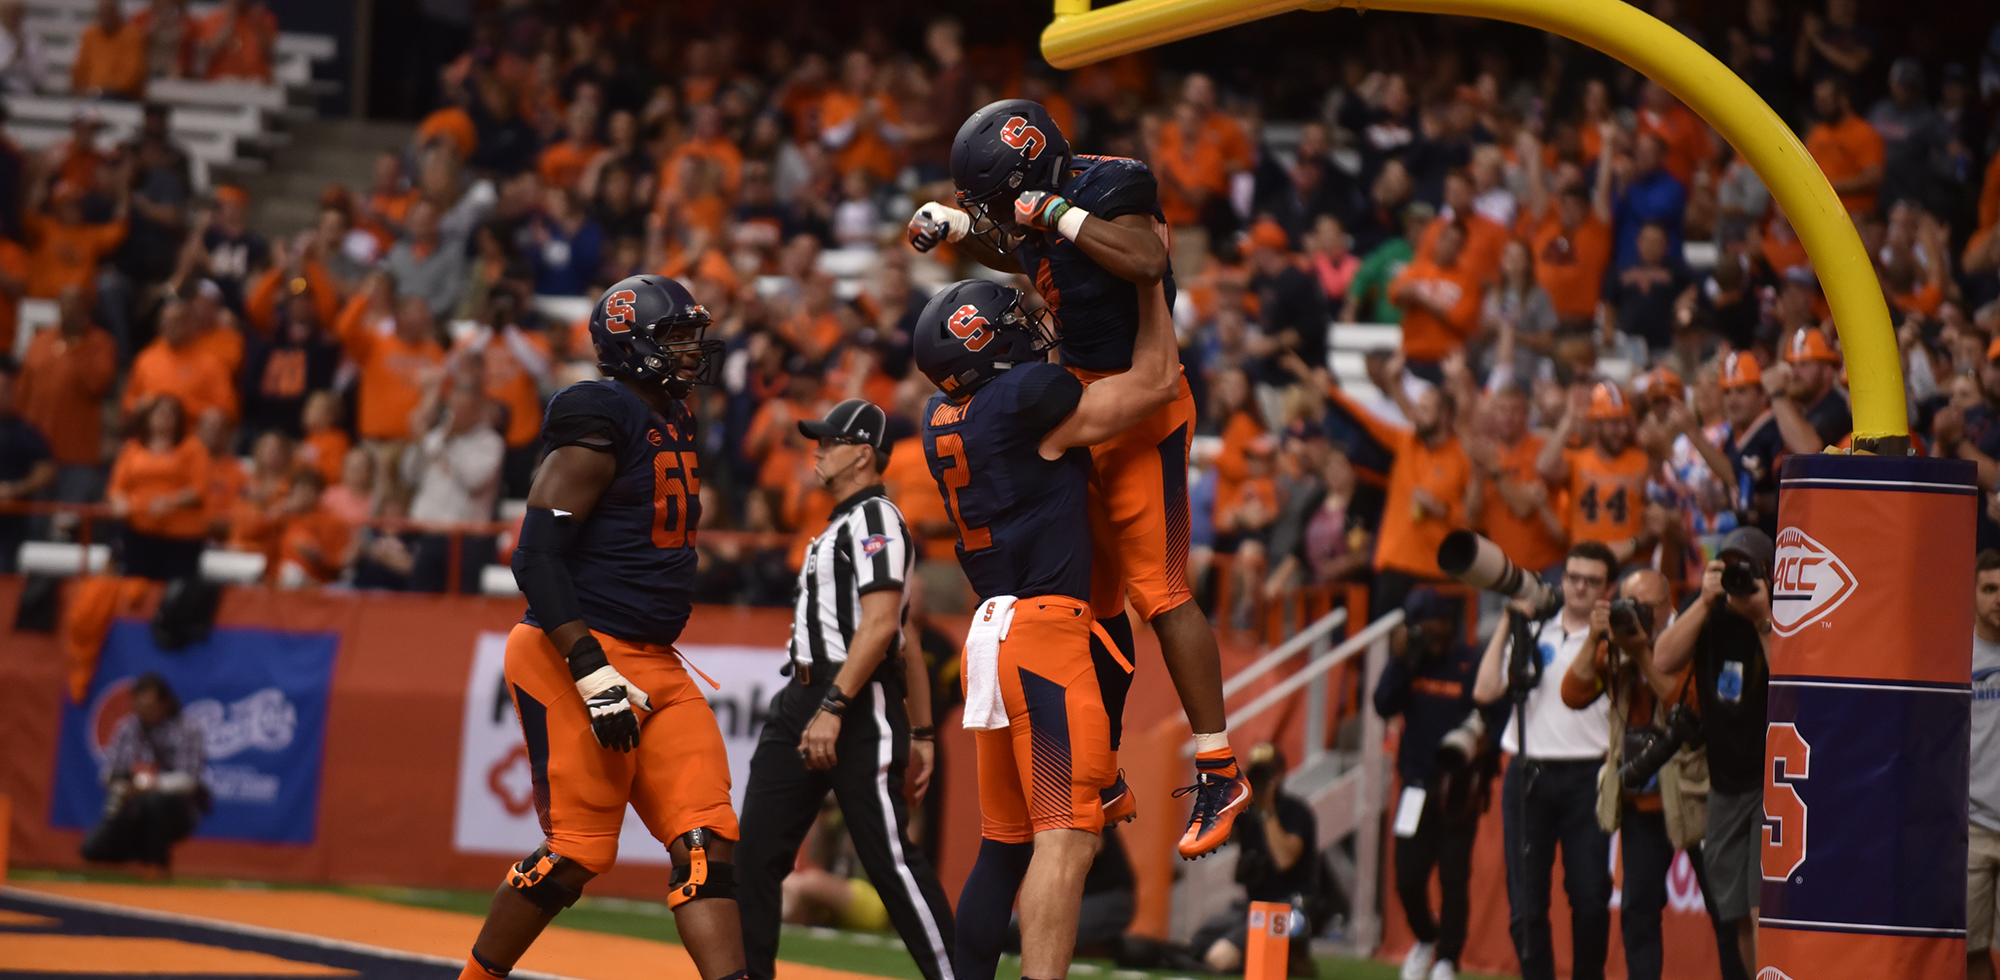 Syracuse Football Schedule This Year